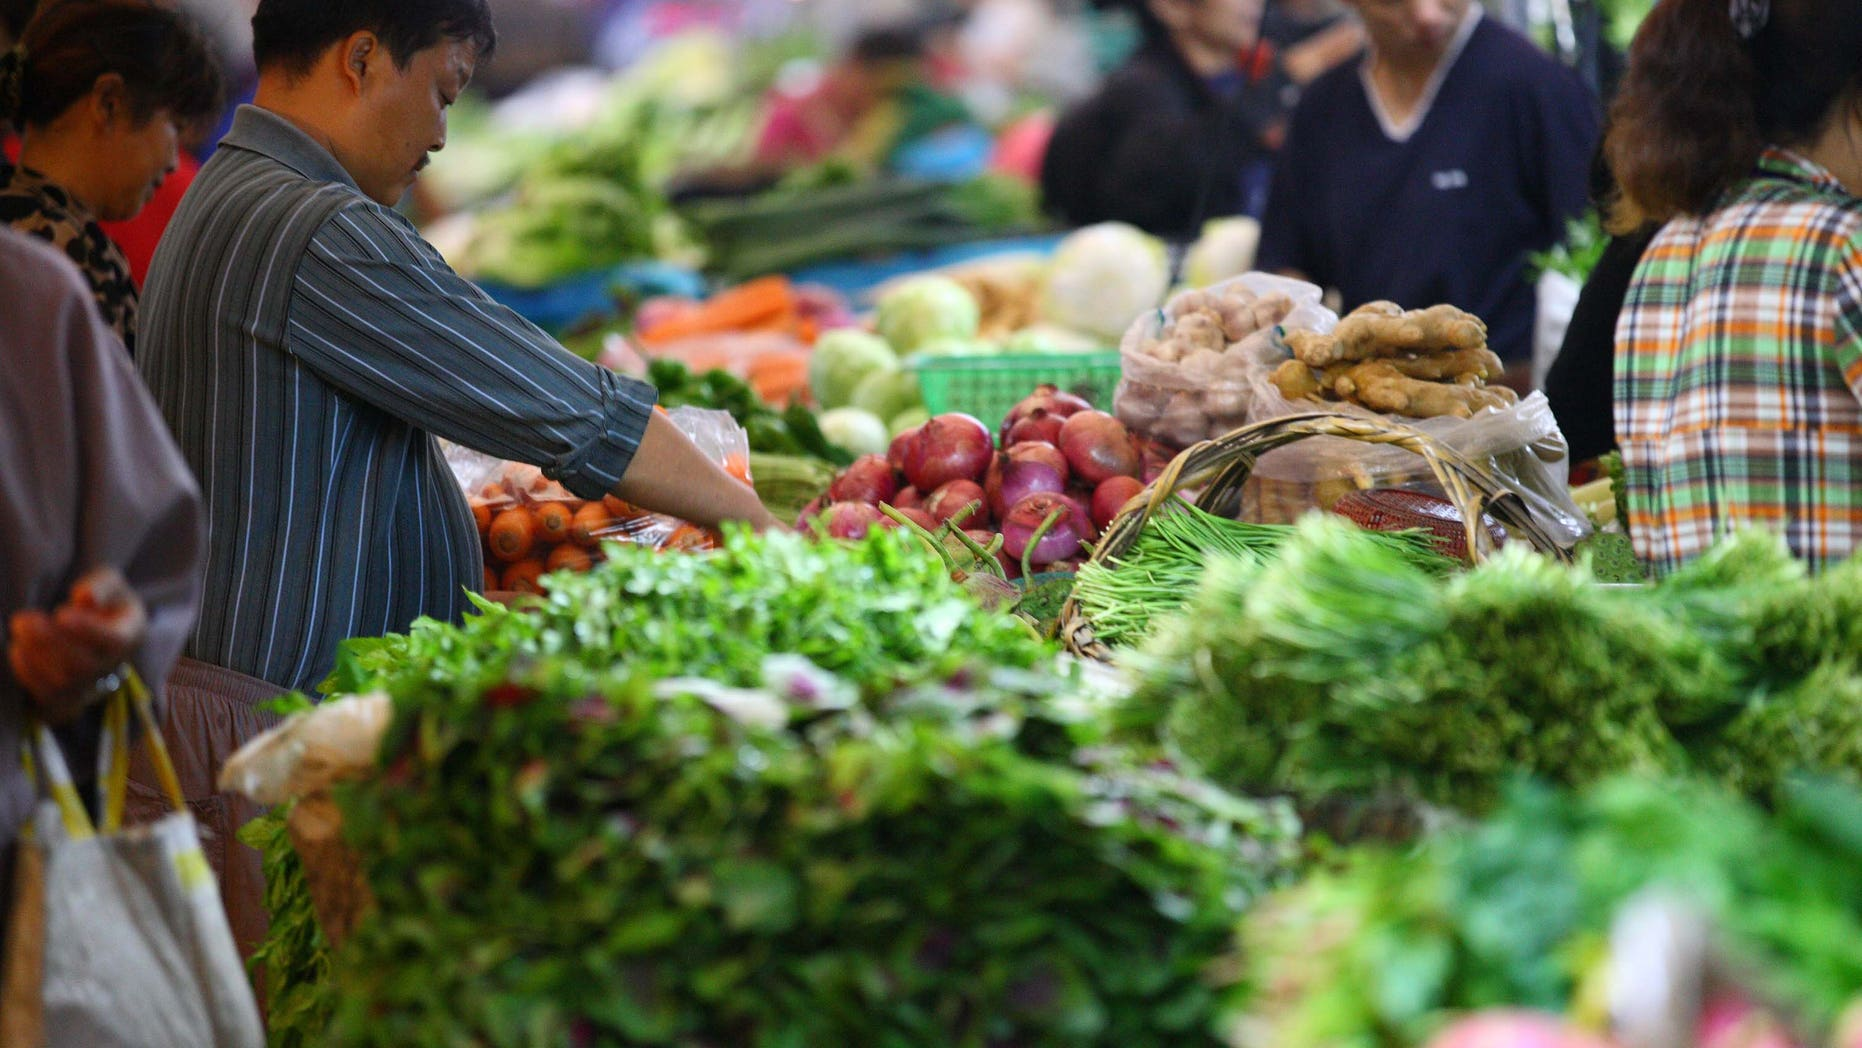 NANJING, CHINA - SEPTEMBER 09:  (CHINA OUT) People are seen shopping in a supermarket  on September 9, 2011 in Nanjing, Jiangsu Province of China. The consumer price index (CPI), a main gauge of inflation, has reached 6.2 percent in August.  (Photo by ChinaFotoPress/Getty Images)